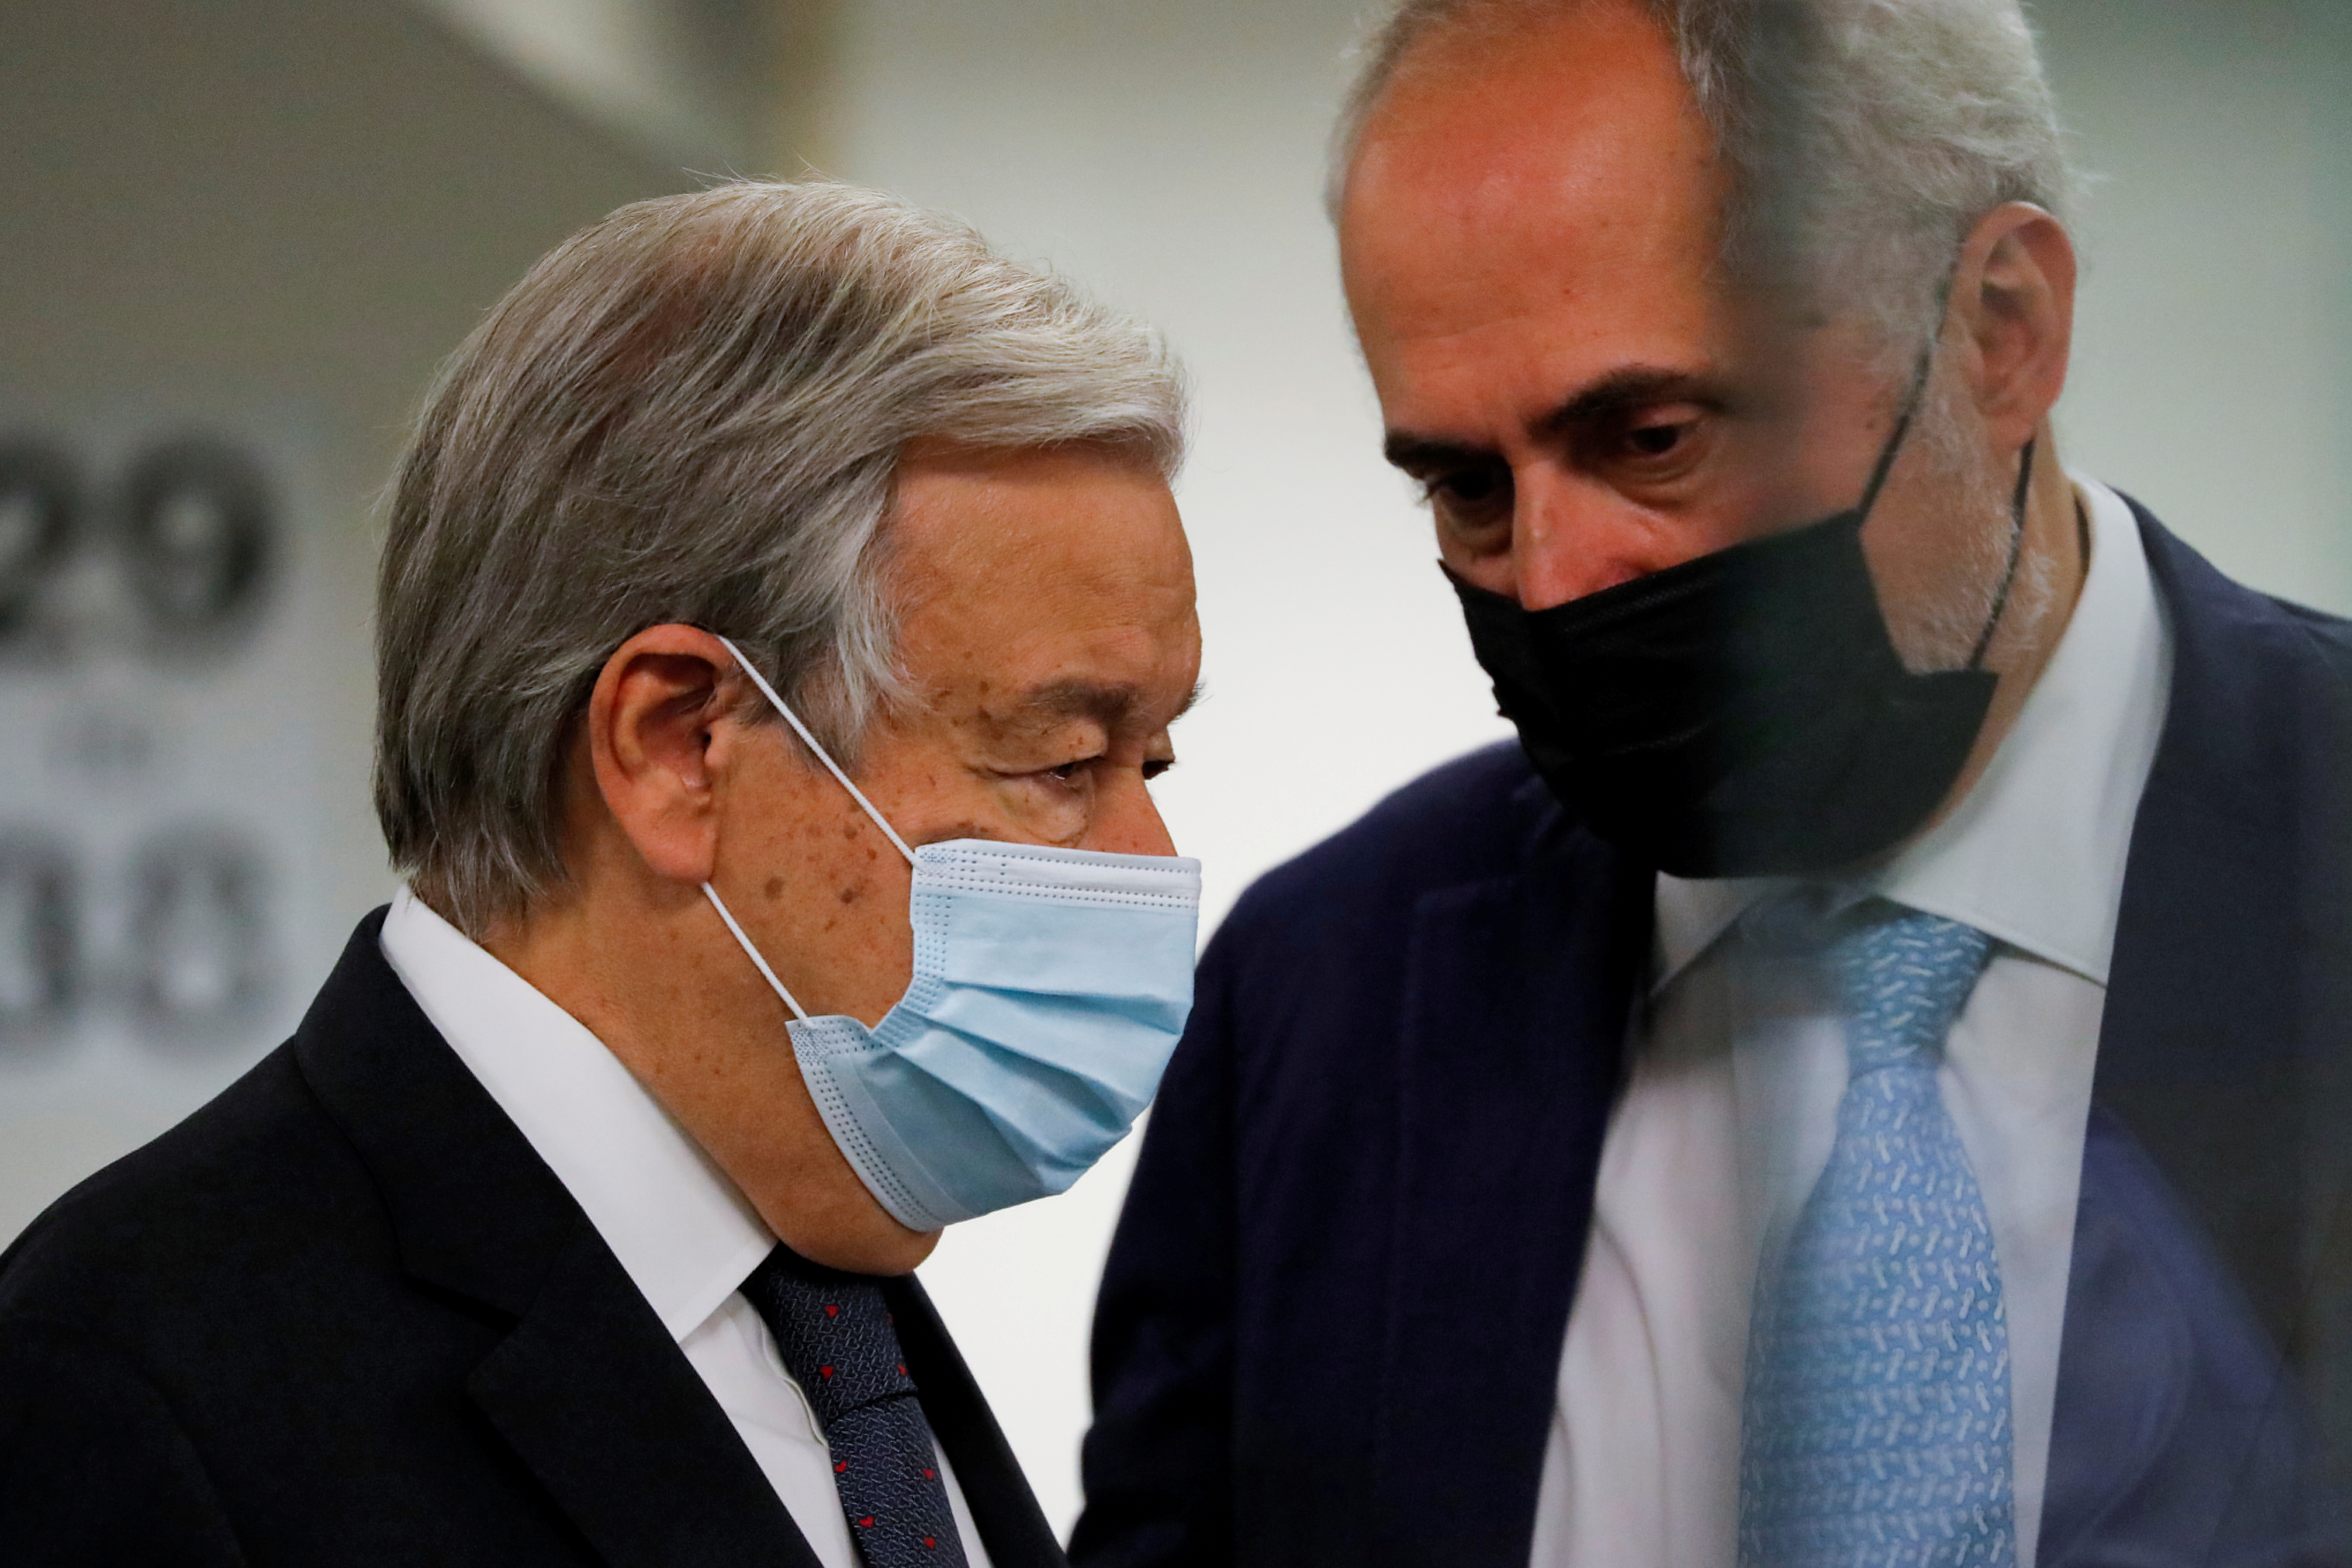 United Nations Secretary-General Antonio Guterres (L) arrives for the United Nations Security Council meets regarding the situation in Afghanistan at the United Nations in New York City, New York, U.S., August 16, 2021. REUTERS/Andrew Kelly